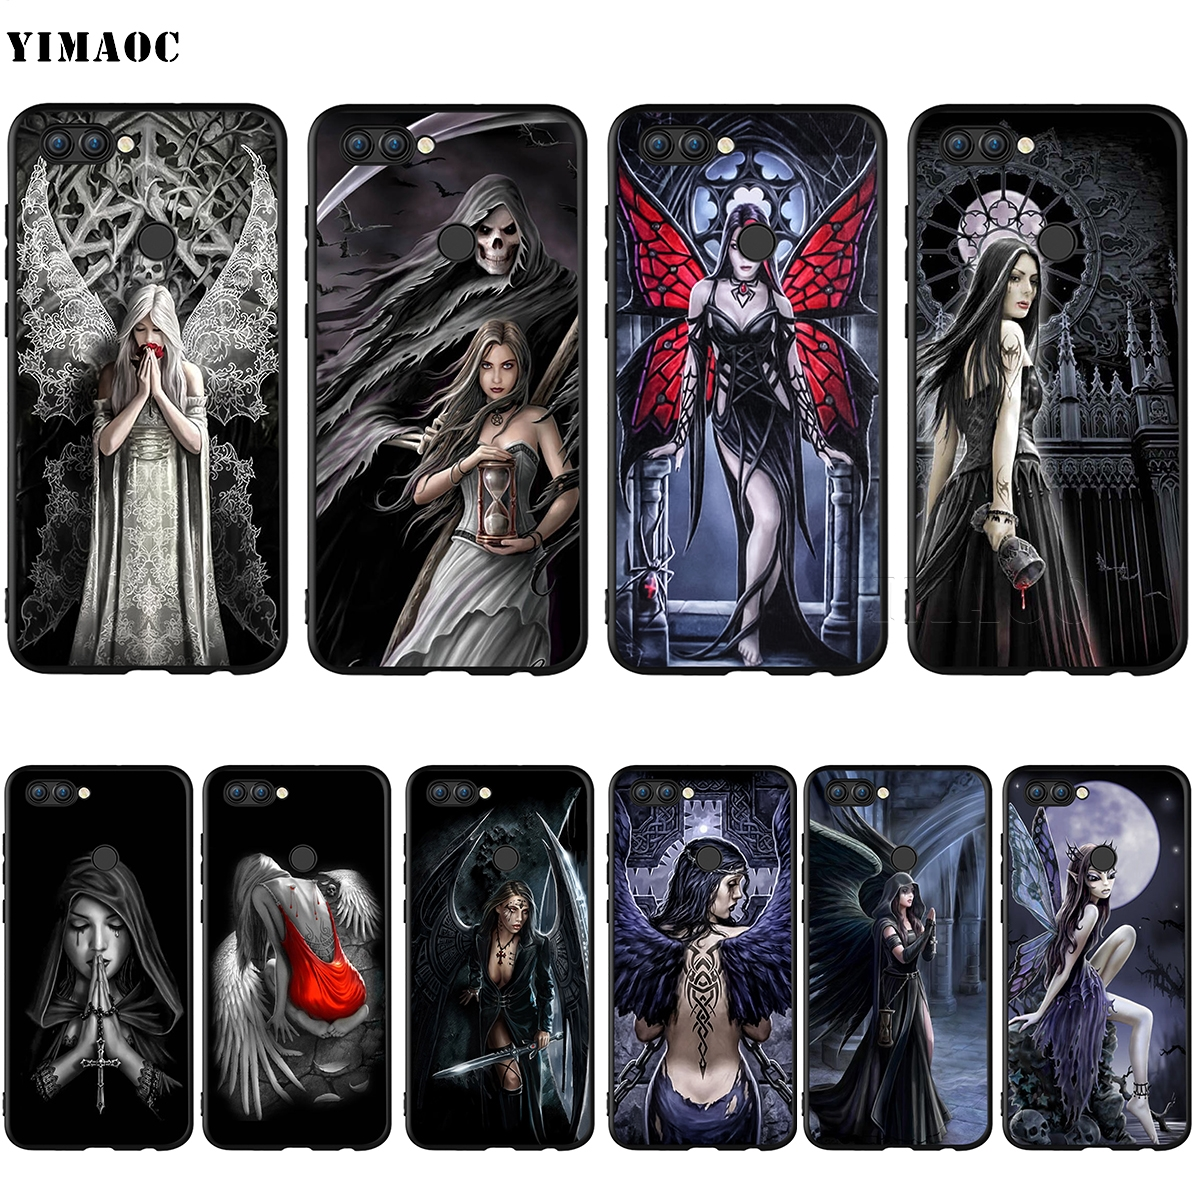 YIMAOC Anne Stokes Gothic Silicone Case for Huawei Honor Mate Y6 6A 8 9 10 P8 P9 P10 P20 P Smart Lite Pro 2017